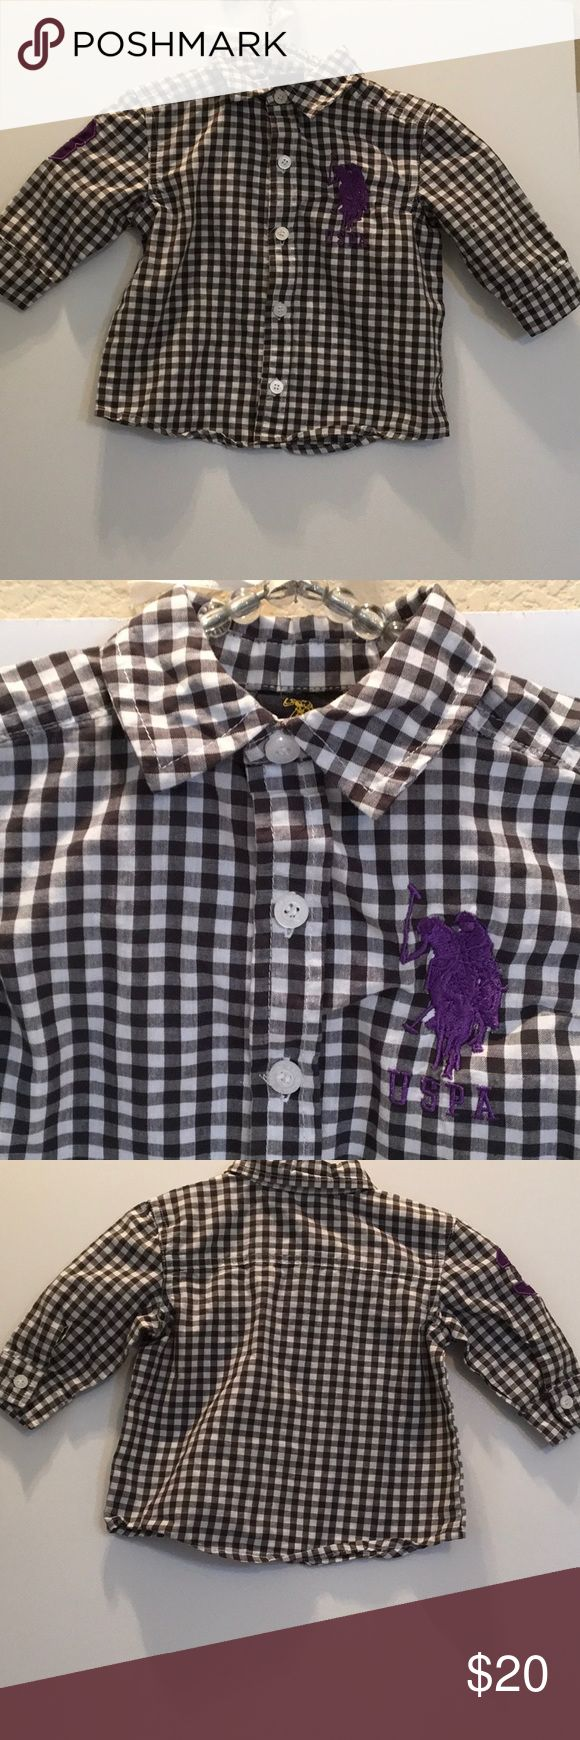 """POLO ASSOCIATION Black white Check Burton down 12M Polo Associatiion by Ralph Lauren brings his B&W checked Button Down shirt. HIghlights 2 3/4"""" PURPLE polo player USPA? A purple #3 is on right shoulder. SWEET shirt. 12M... 12"""" pit - pit...12 3/8  shoulder - edge.LIKE NEW 🏇🏼💜🏇🏼💜🏇🏼💜🏇🏼💜 U.S. Polo Assn. Shirts & Tops Button Down Shirts"""